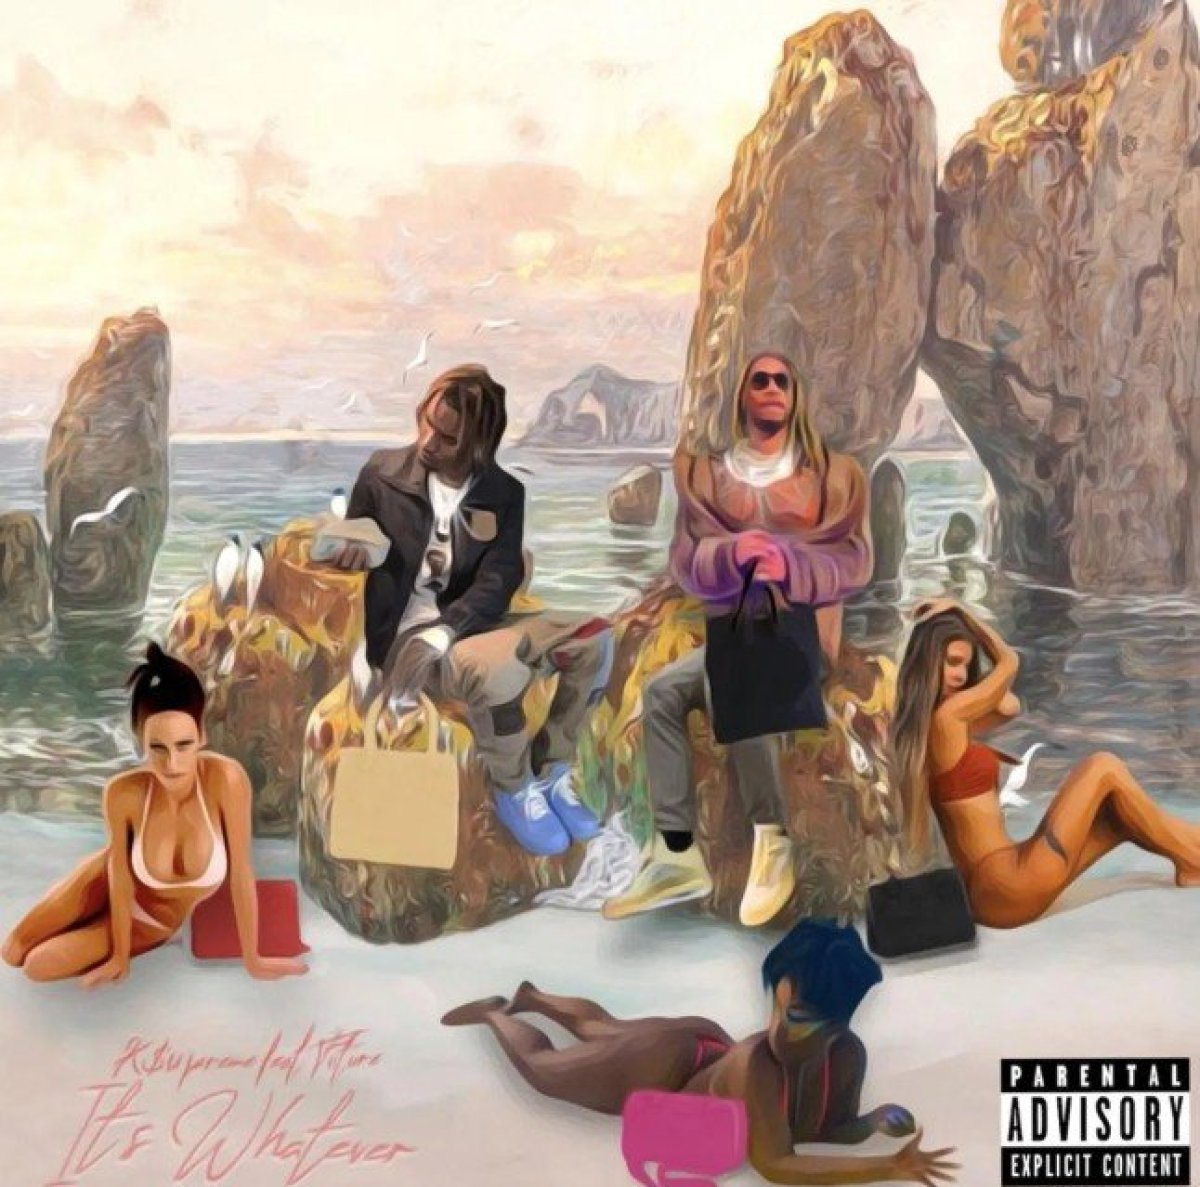 K$upreme Ft. Future – It's Whatever MP3 DOWNLOAD FREE